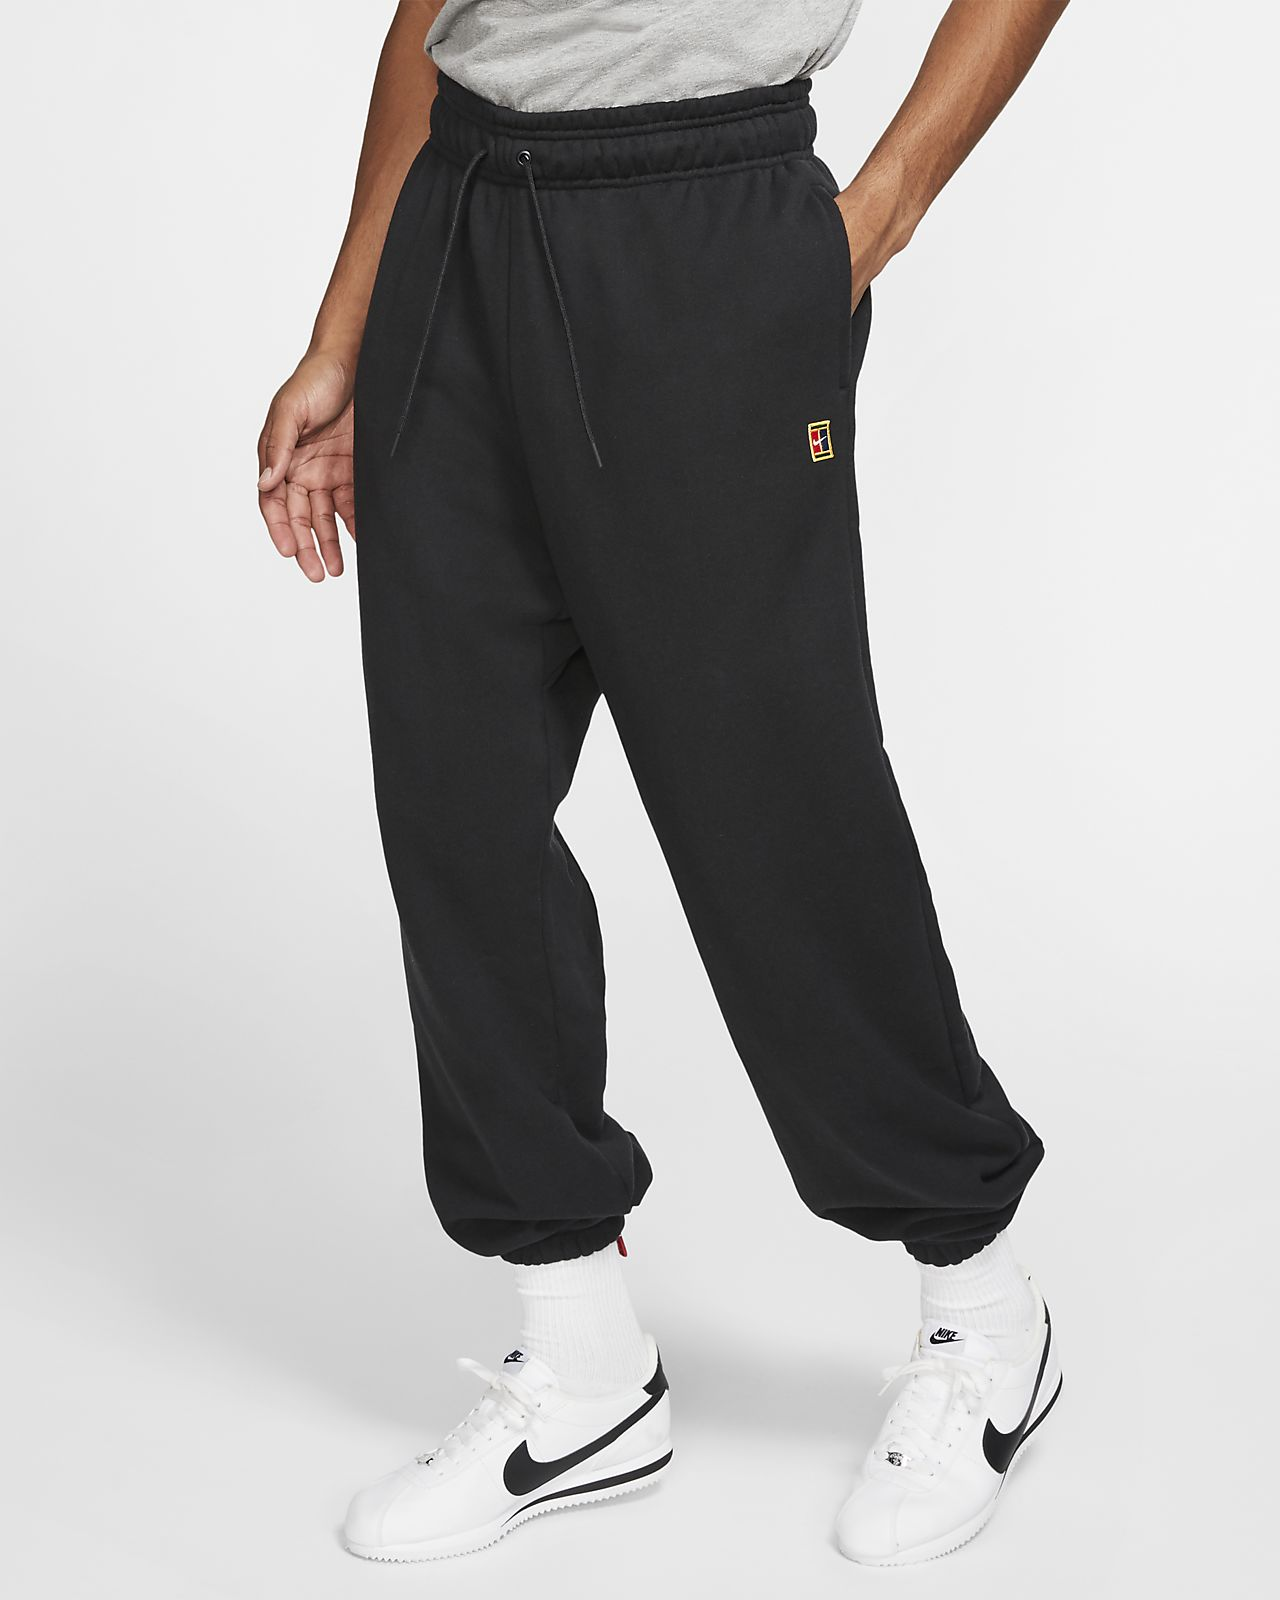 Best Product Nike Women's Court Stadium Tennis Trousers